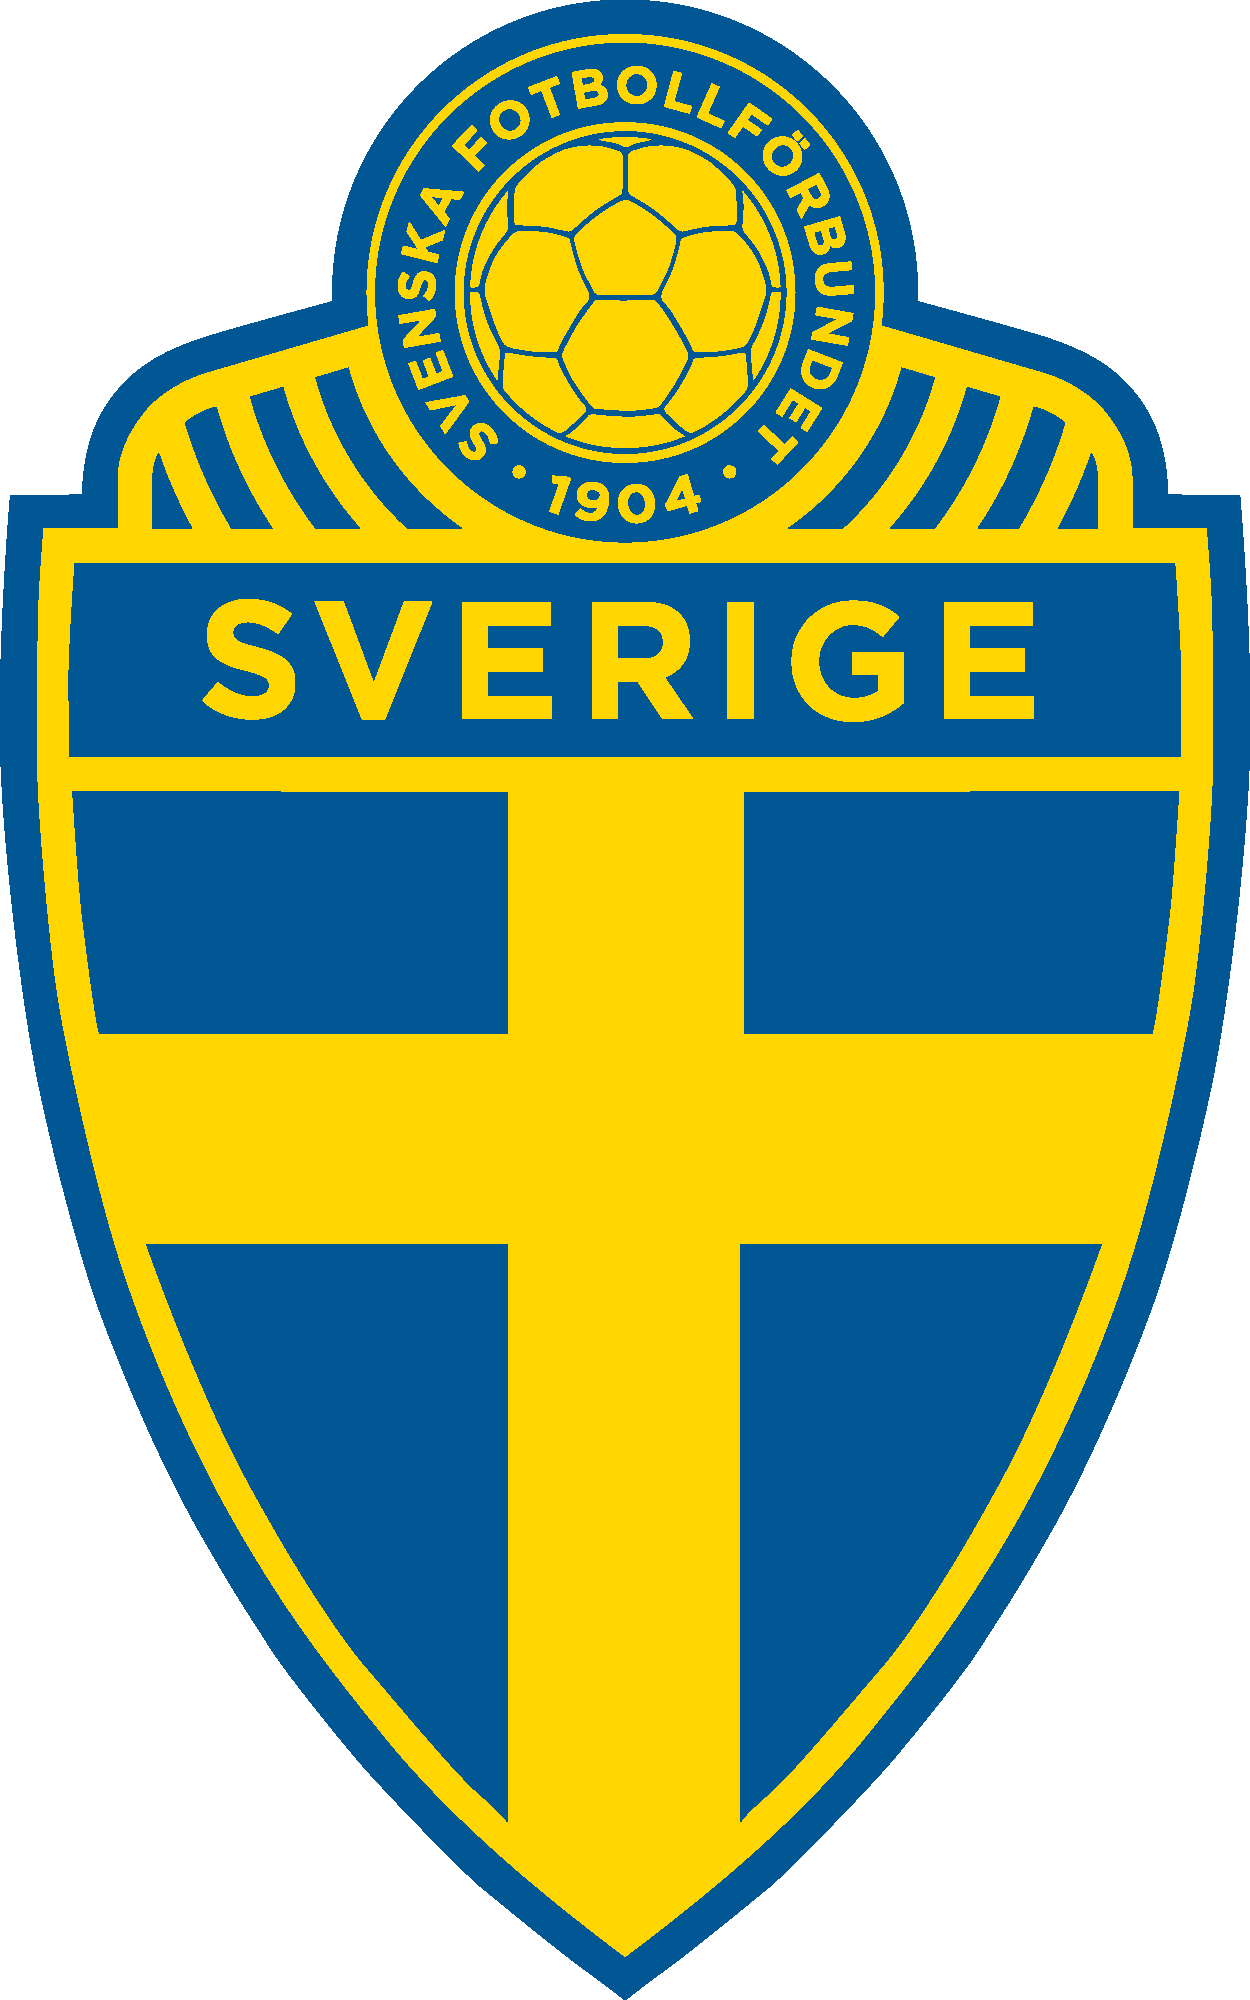 Sverige Karta Clipart.Sweden Clipart At Getdrawings Com Free For Personal Use Sweden